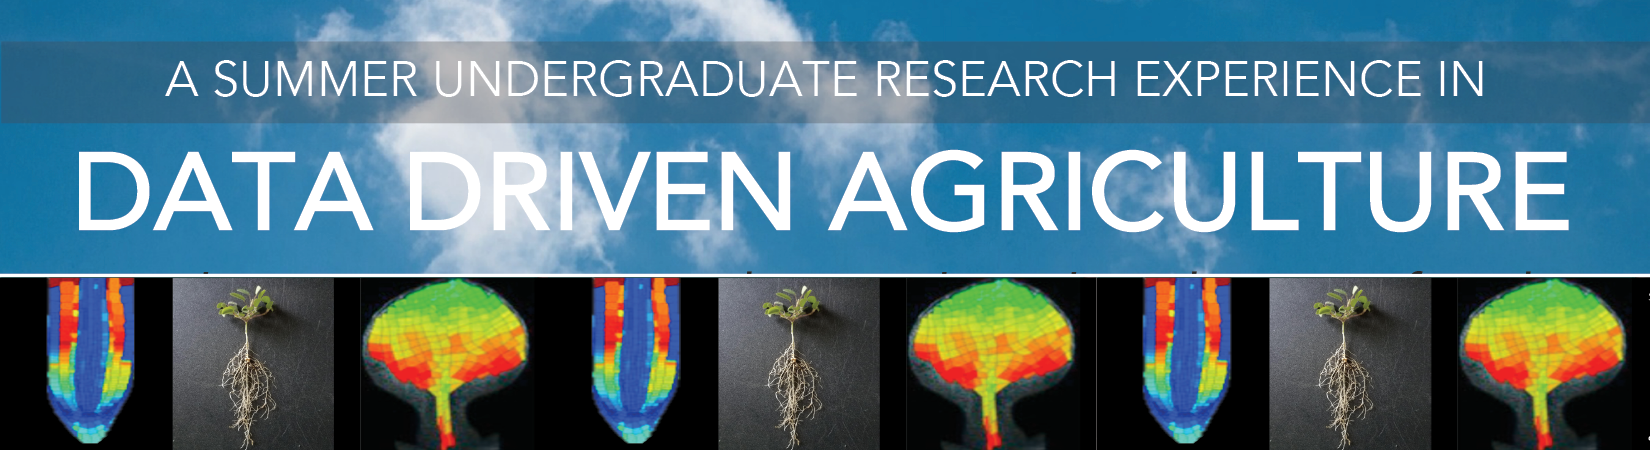 Data driven Ag research for undergraduates